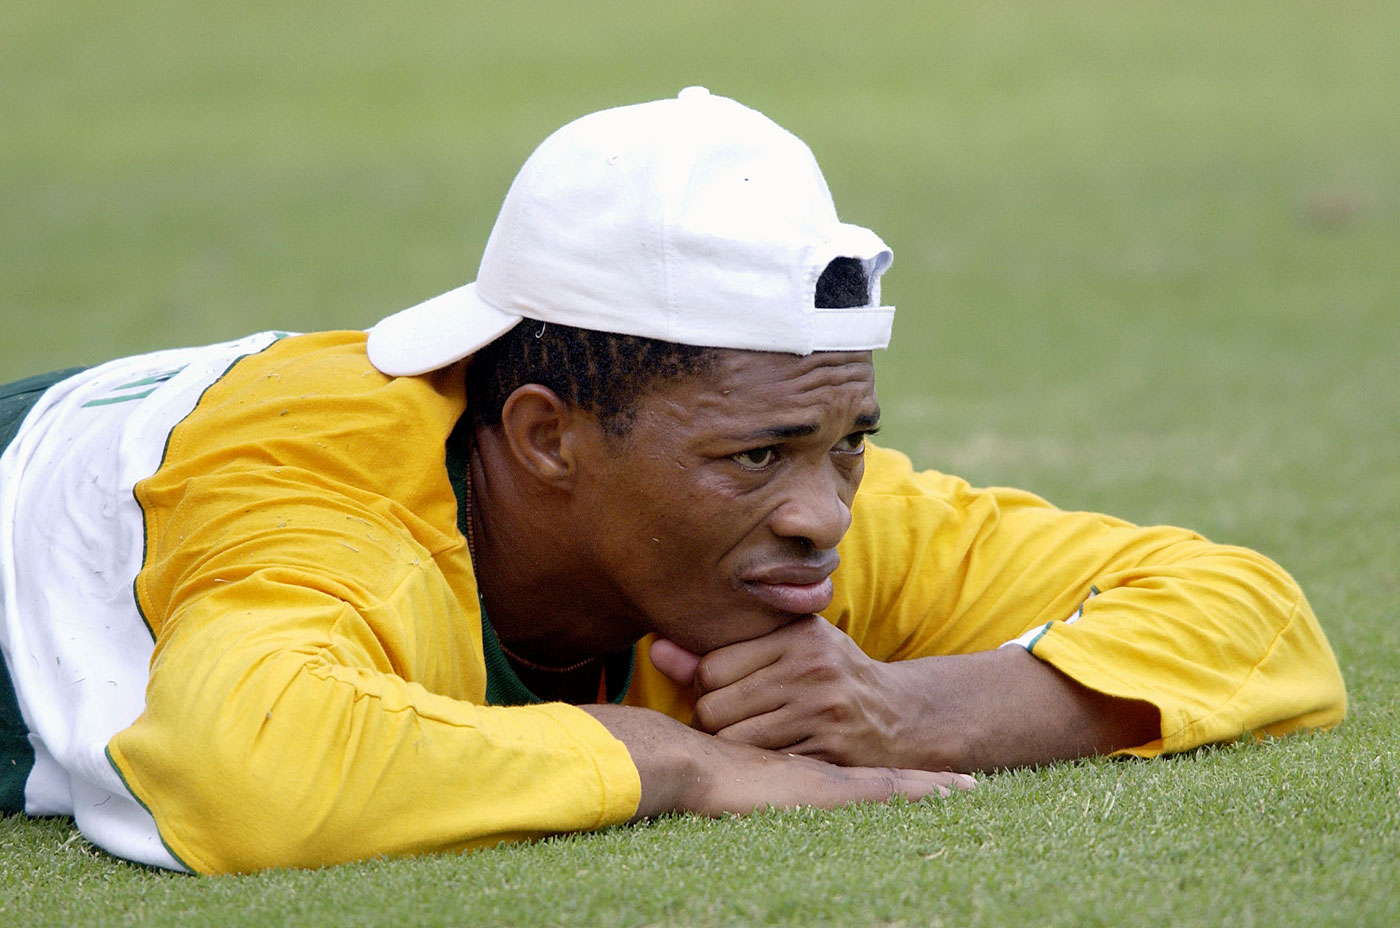 Makhaya Ntini's debut in 1998 was a crowning moment for black cricketers. But only six others have played Tests for South Africa since